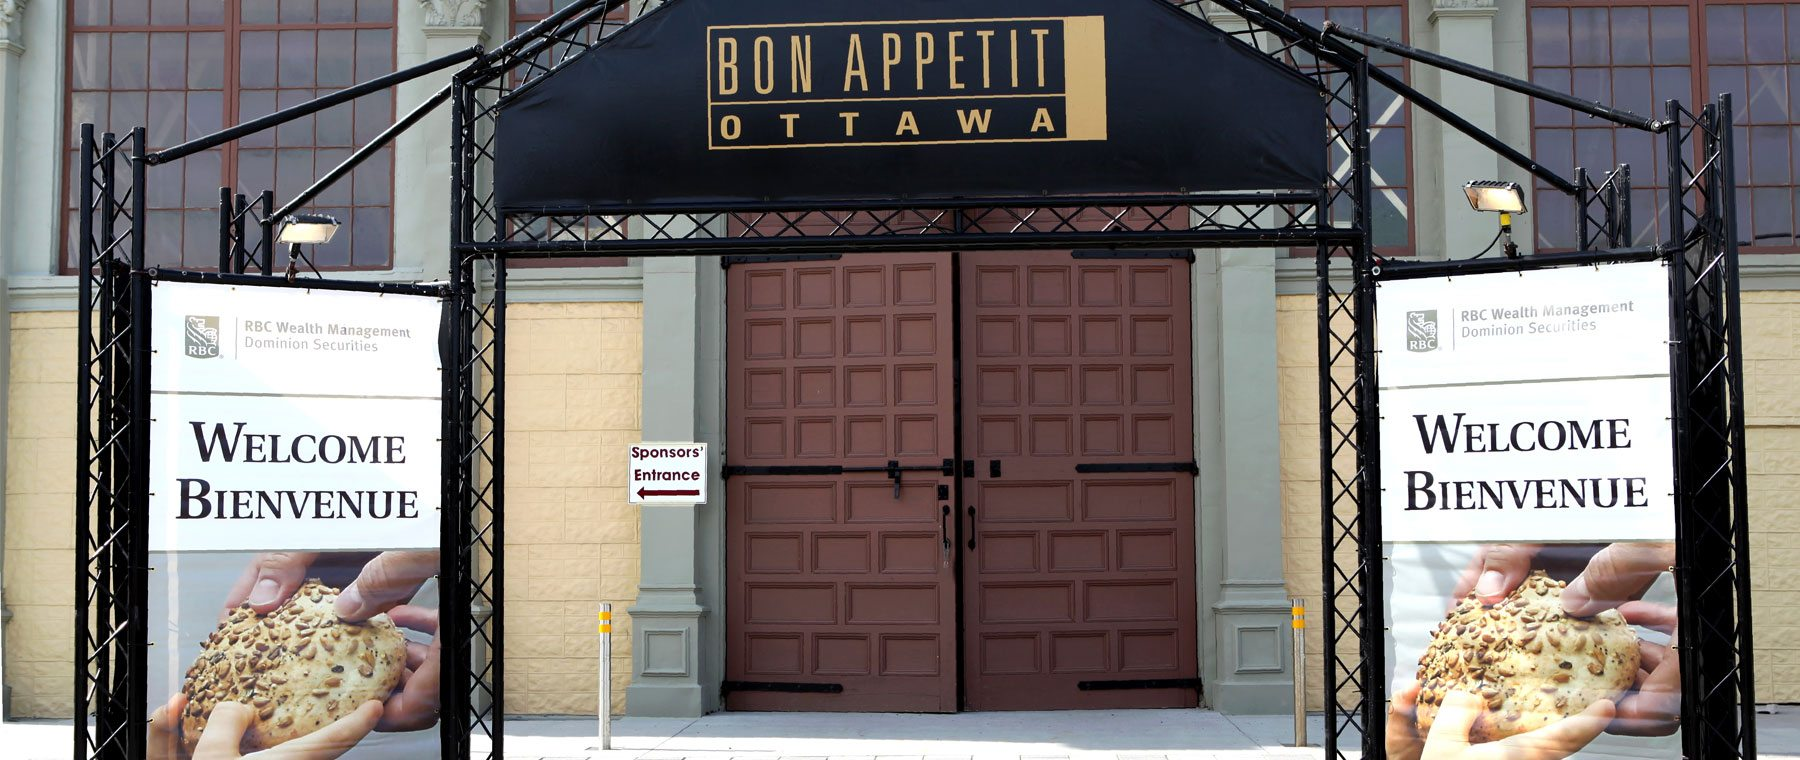 Bon Appetit Ottawa 20th anniversary exclusive